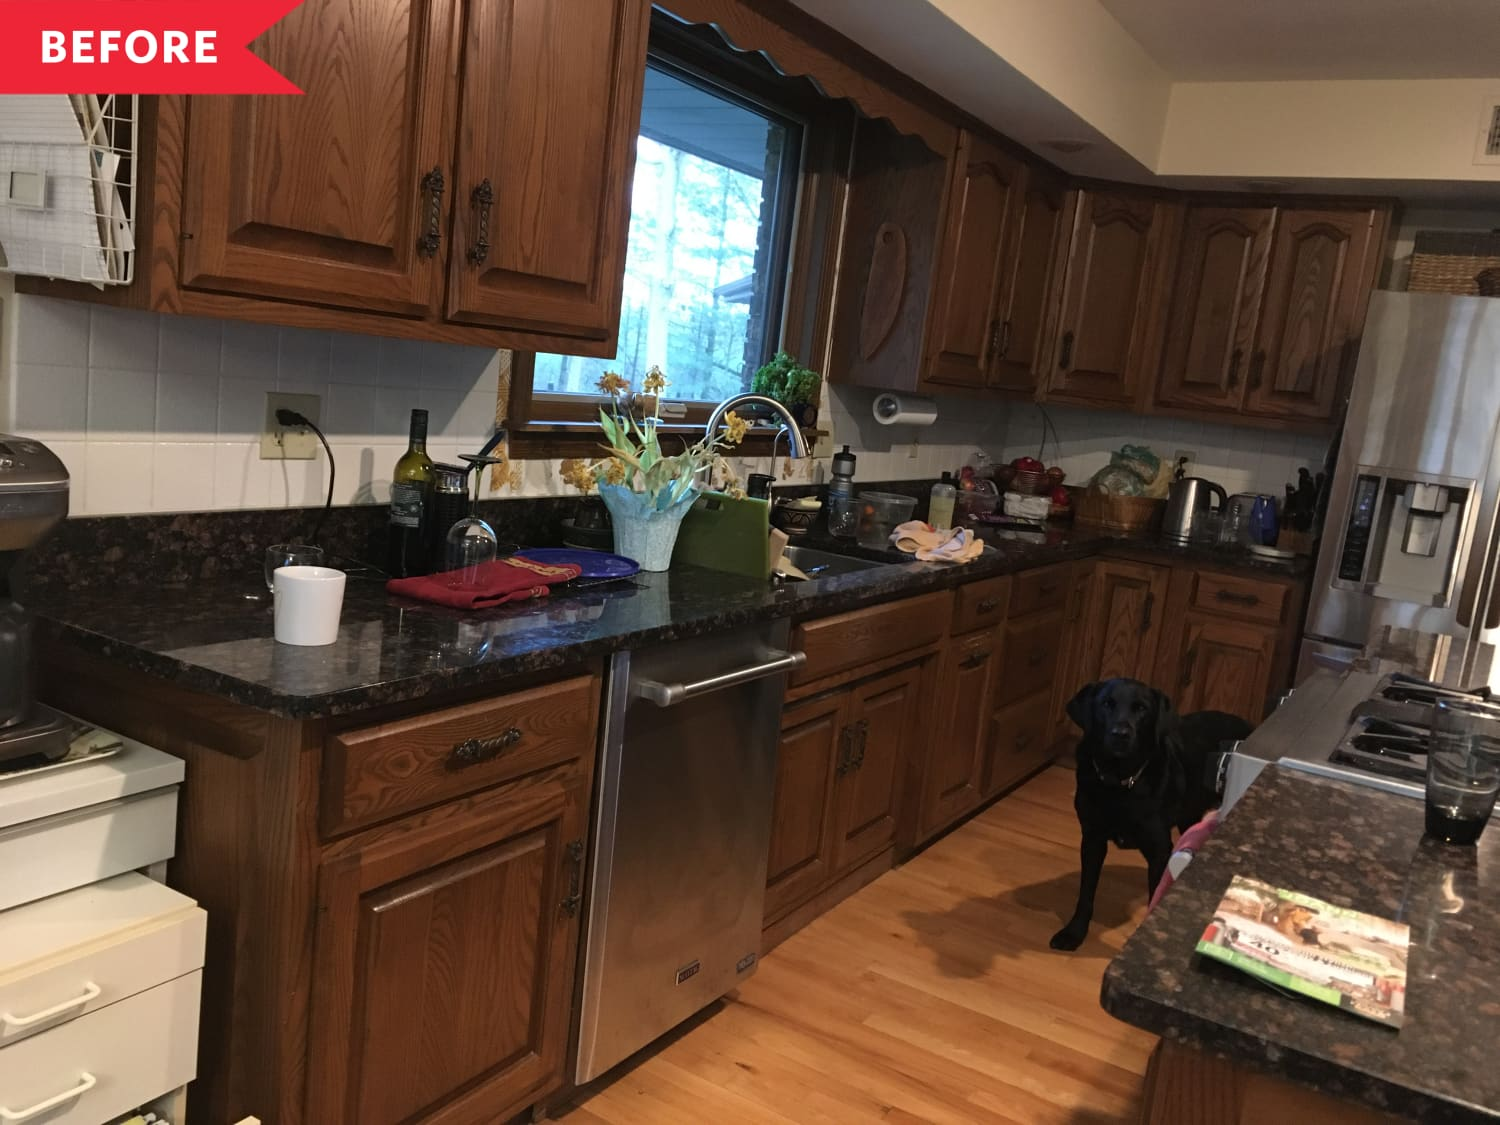 Brown 1970s Kitchen Renovation   Apartment Therapy